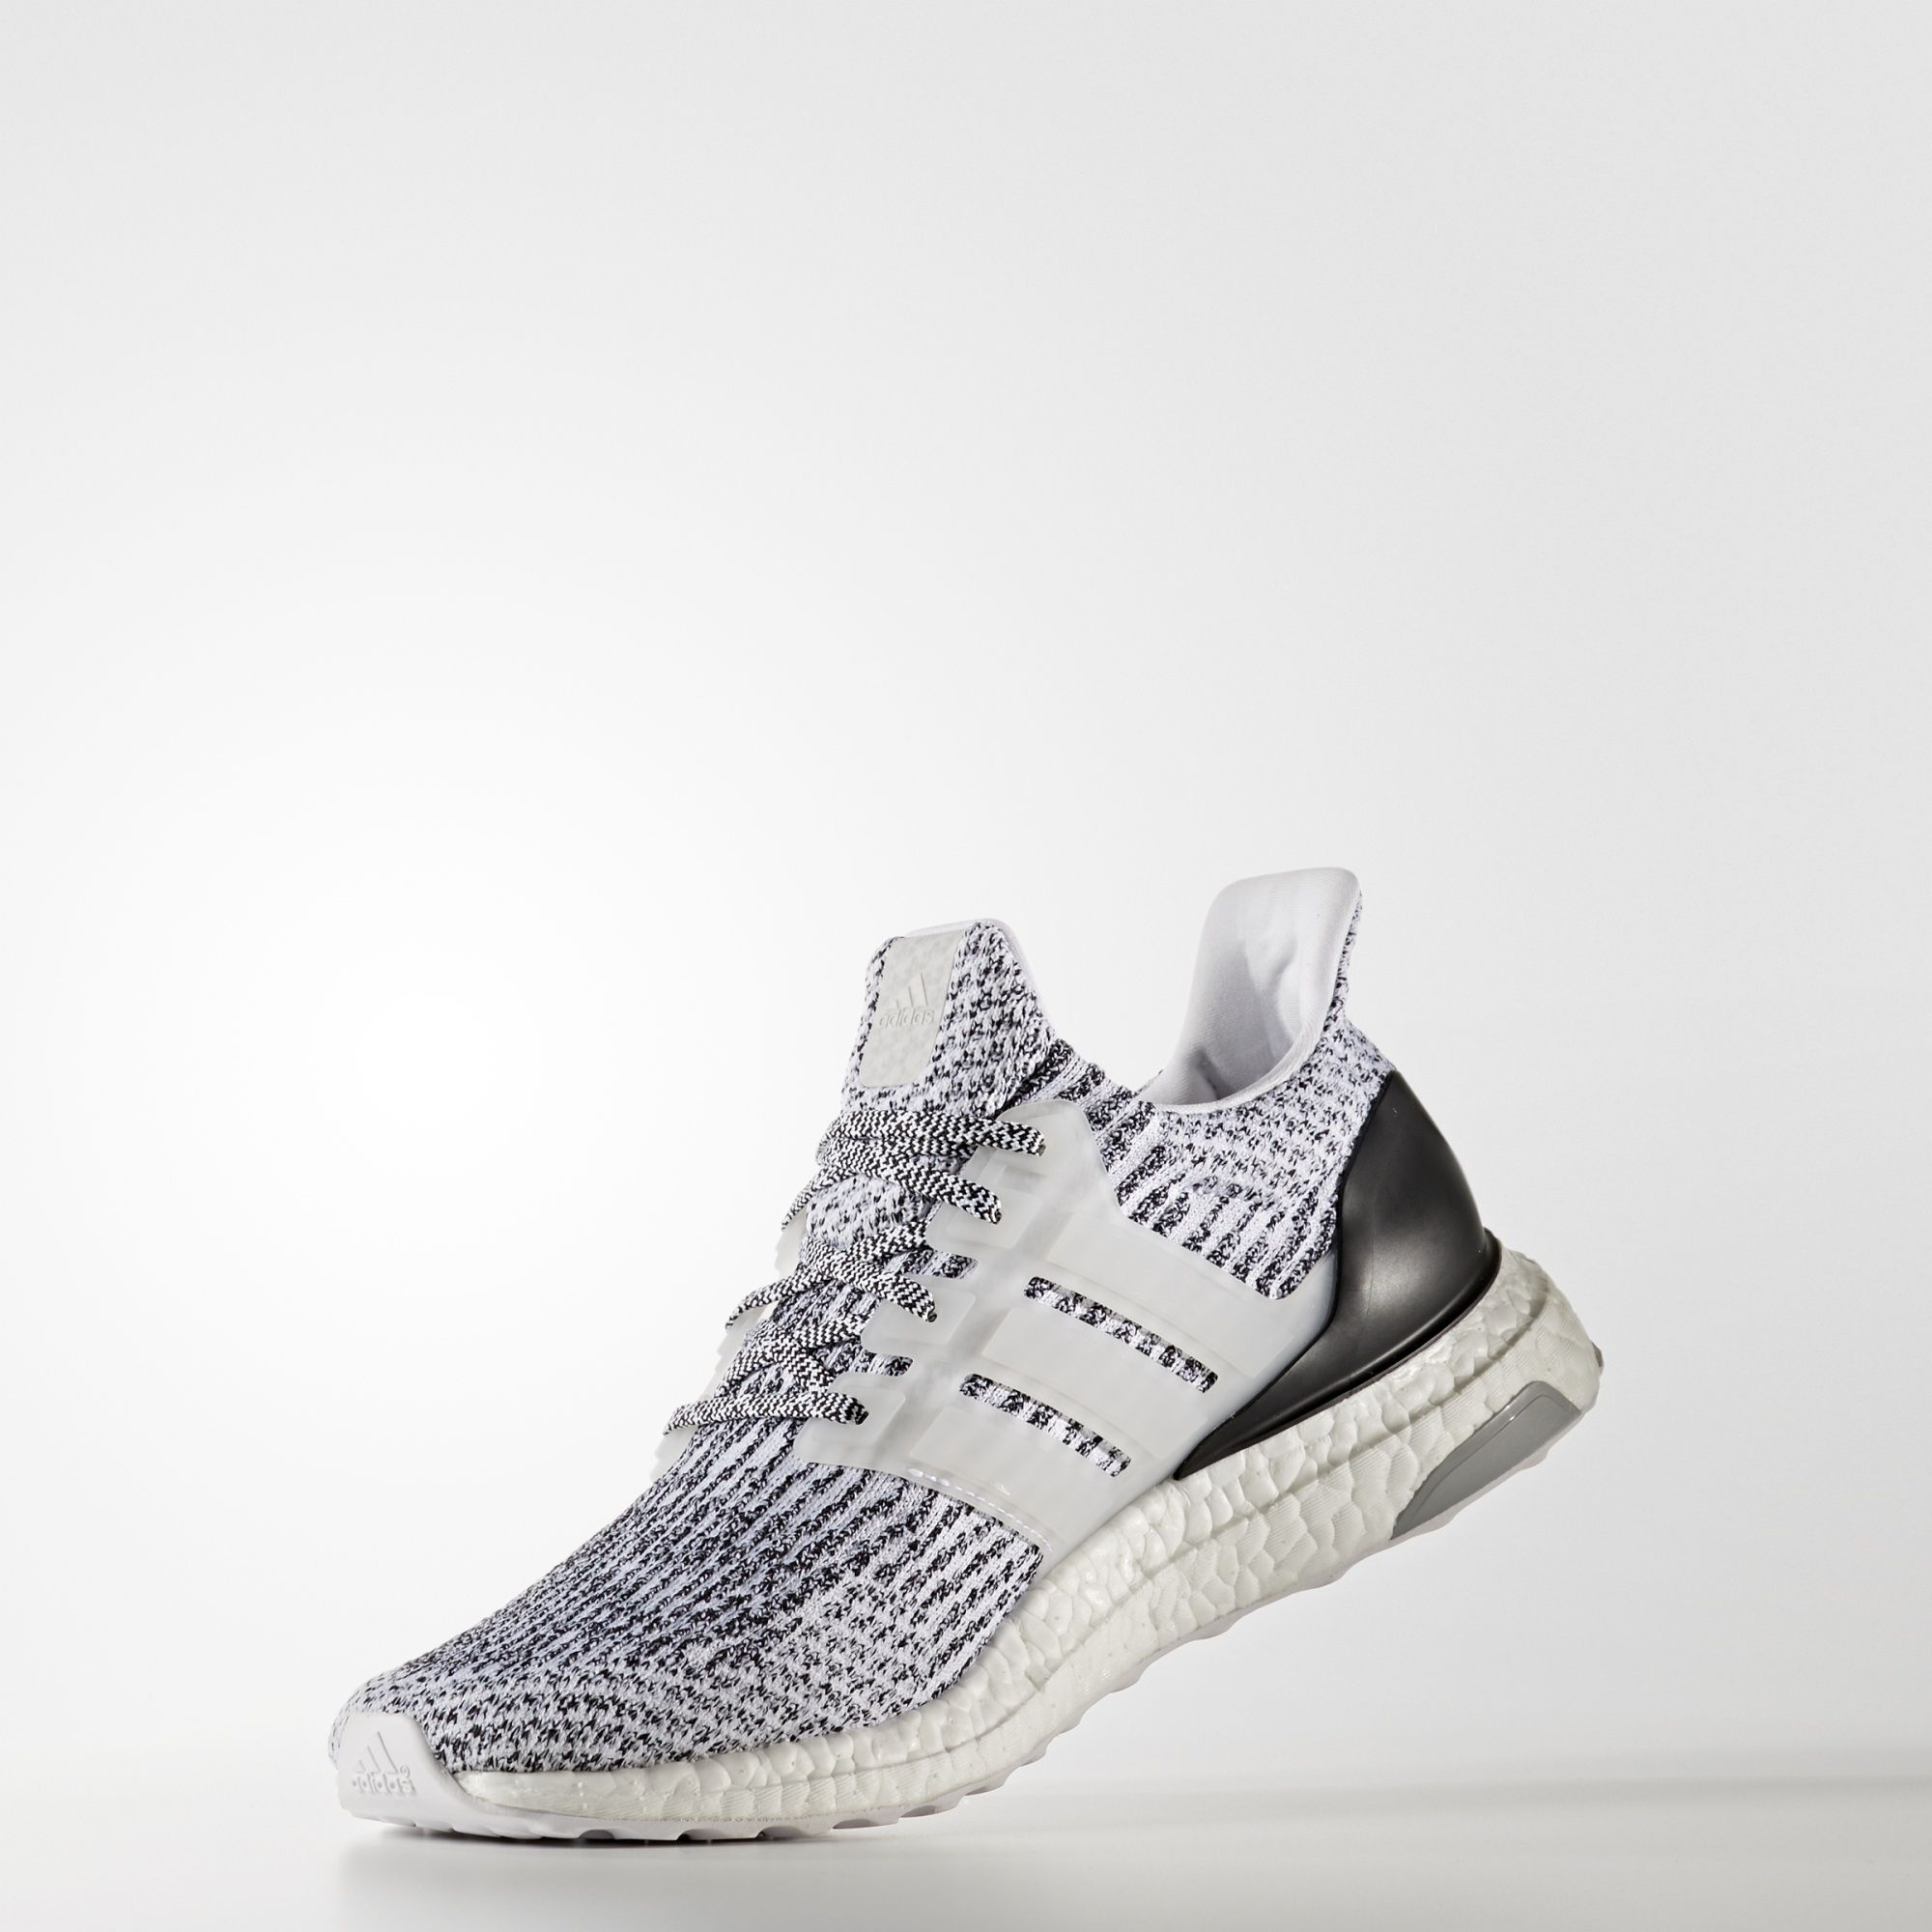 Ultraboost Skor Grey Five/Carbon/Ash Pearl W0ERQI197E